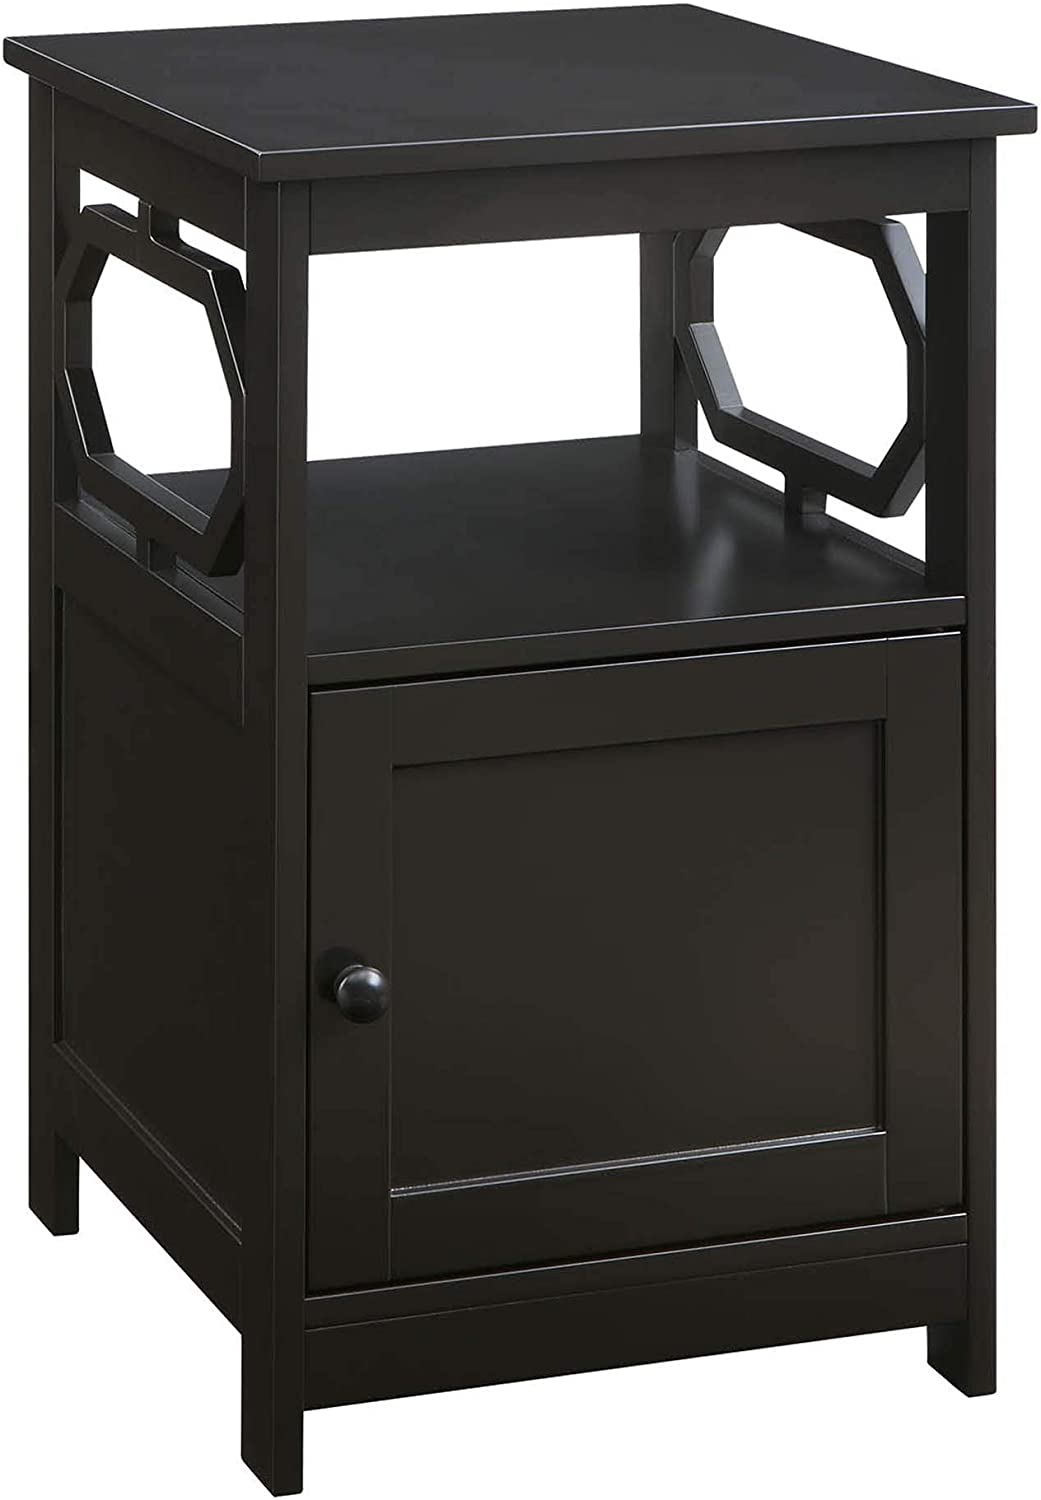 Convenience Concepts Omega End Table with Cabinet, Espresso